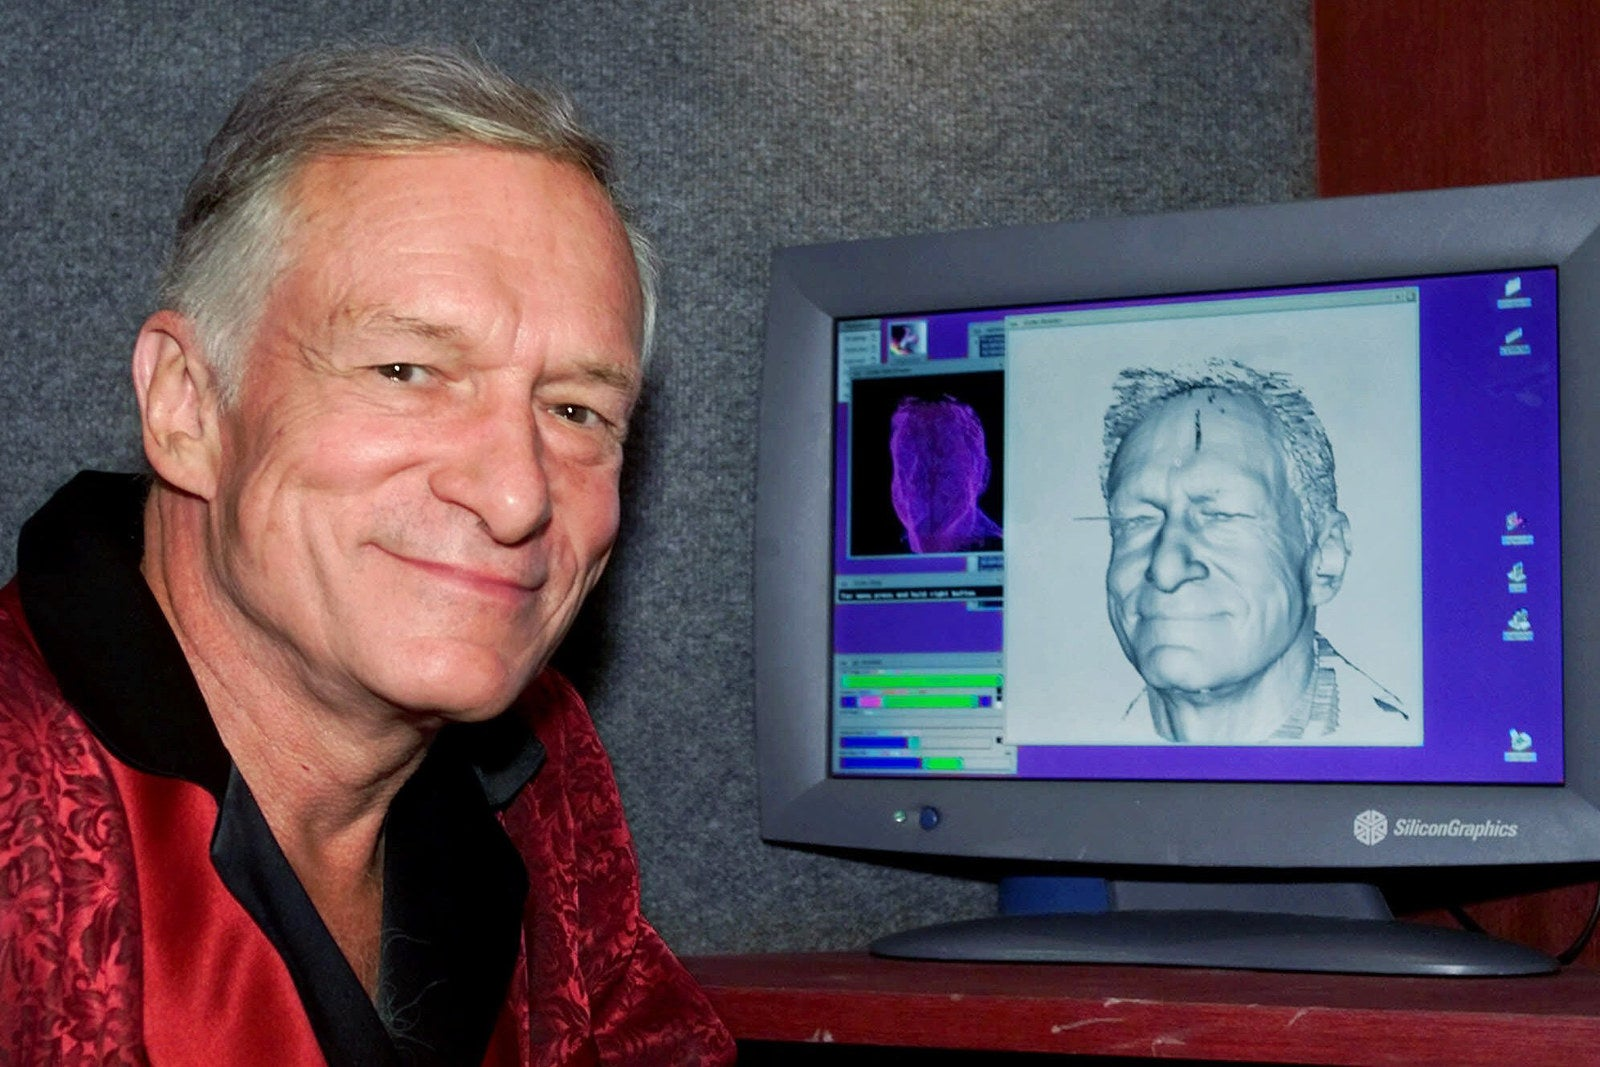 Hefner poses next to a laser-generated image of his head on a computer screen following a laser scanning session on Sept. 26, 2000, at the Playboy Mansion in Los Angeles. The resulting image was used to create an exact wax model of his head for a figure at the Hollywood Wax Museum.